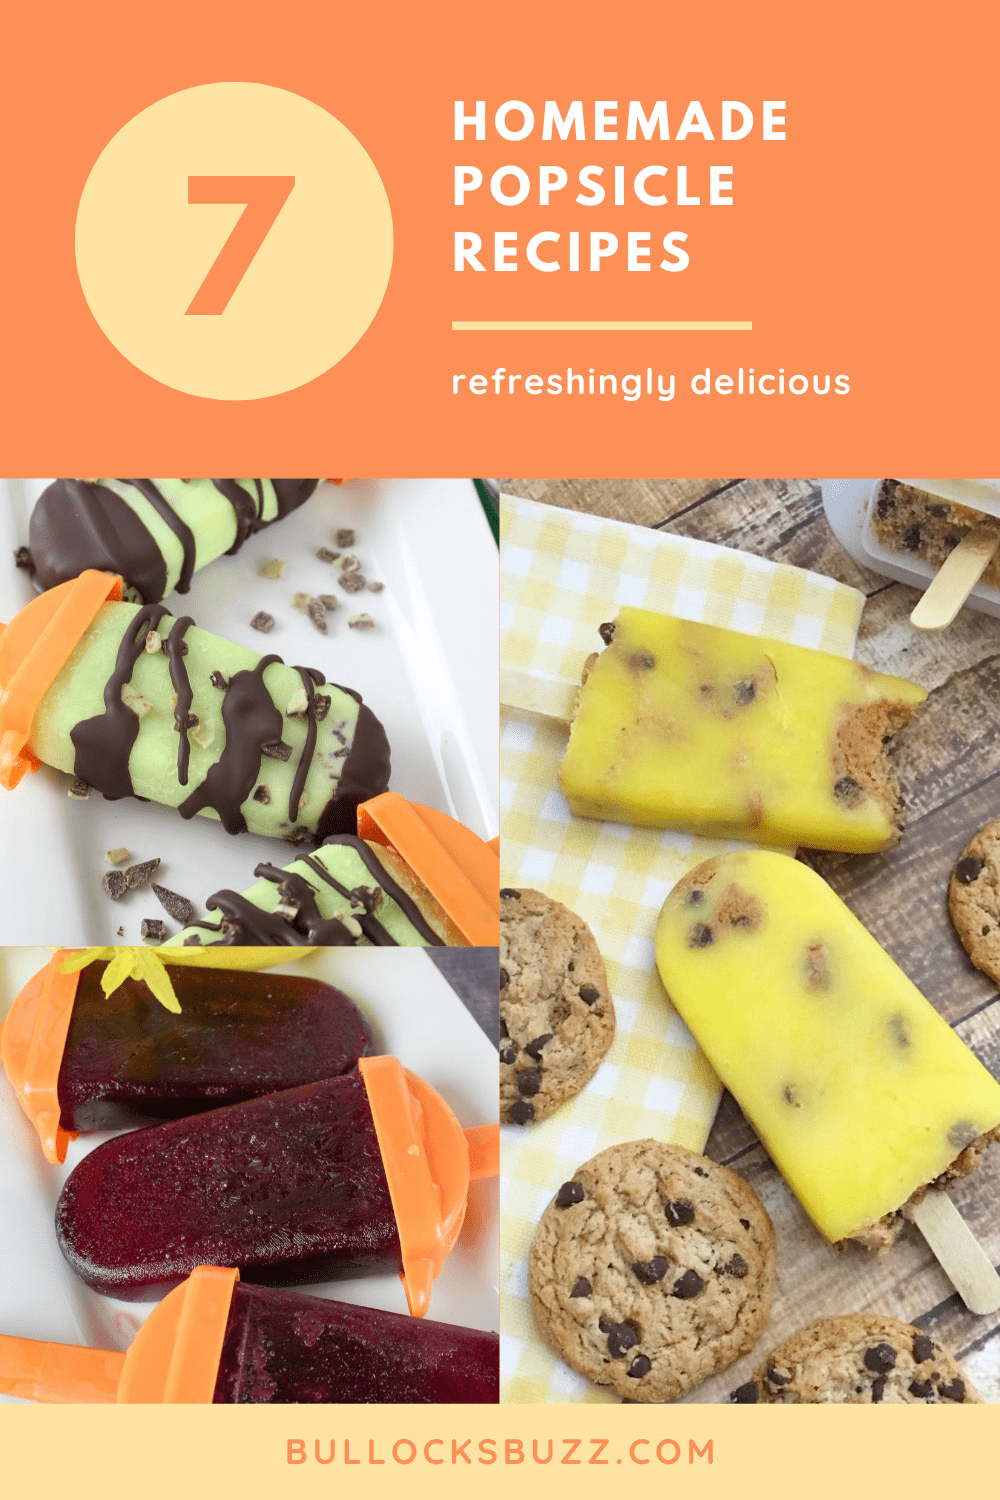 Nothing beats an ice-cold popsicle on a sweltering summer's day. Keep cool with this popsicle recipe roundup featuring seven delicious homemade popsicle recipes that are so easy to make, you'll skip the store-bought ones for good.